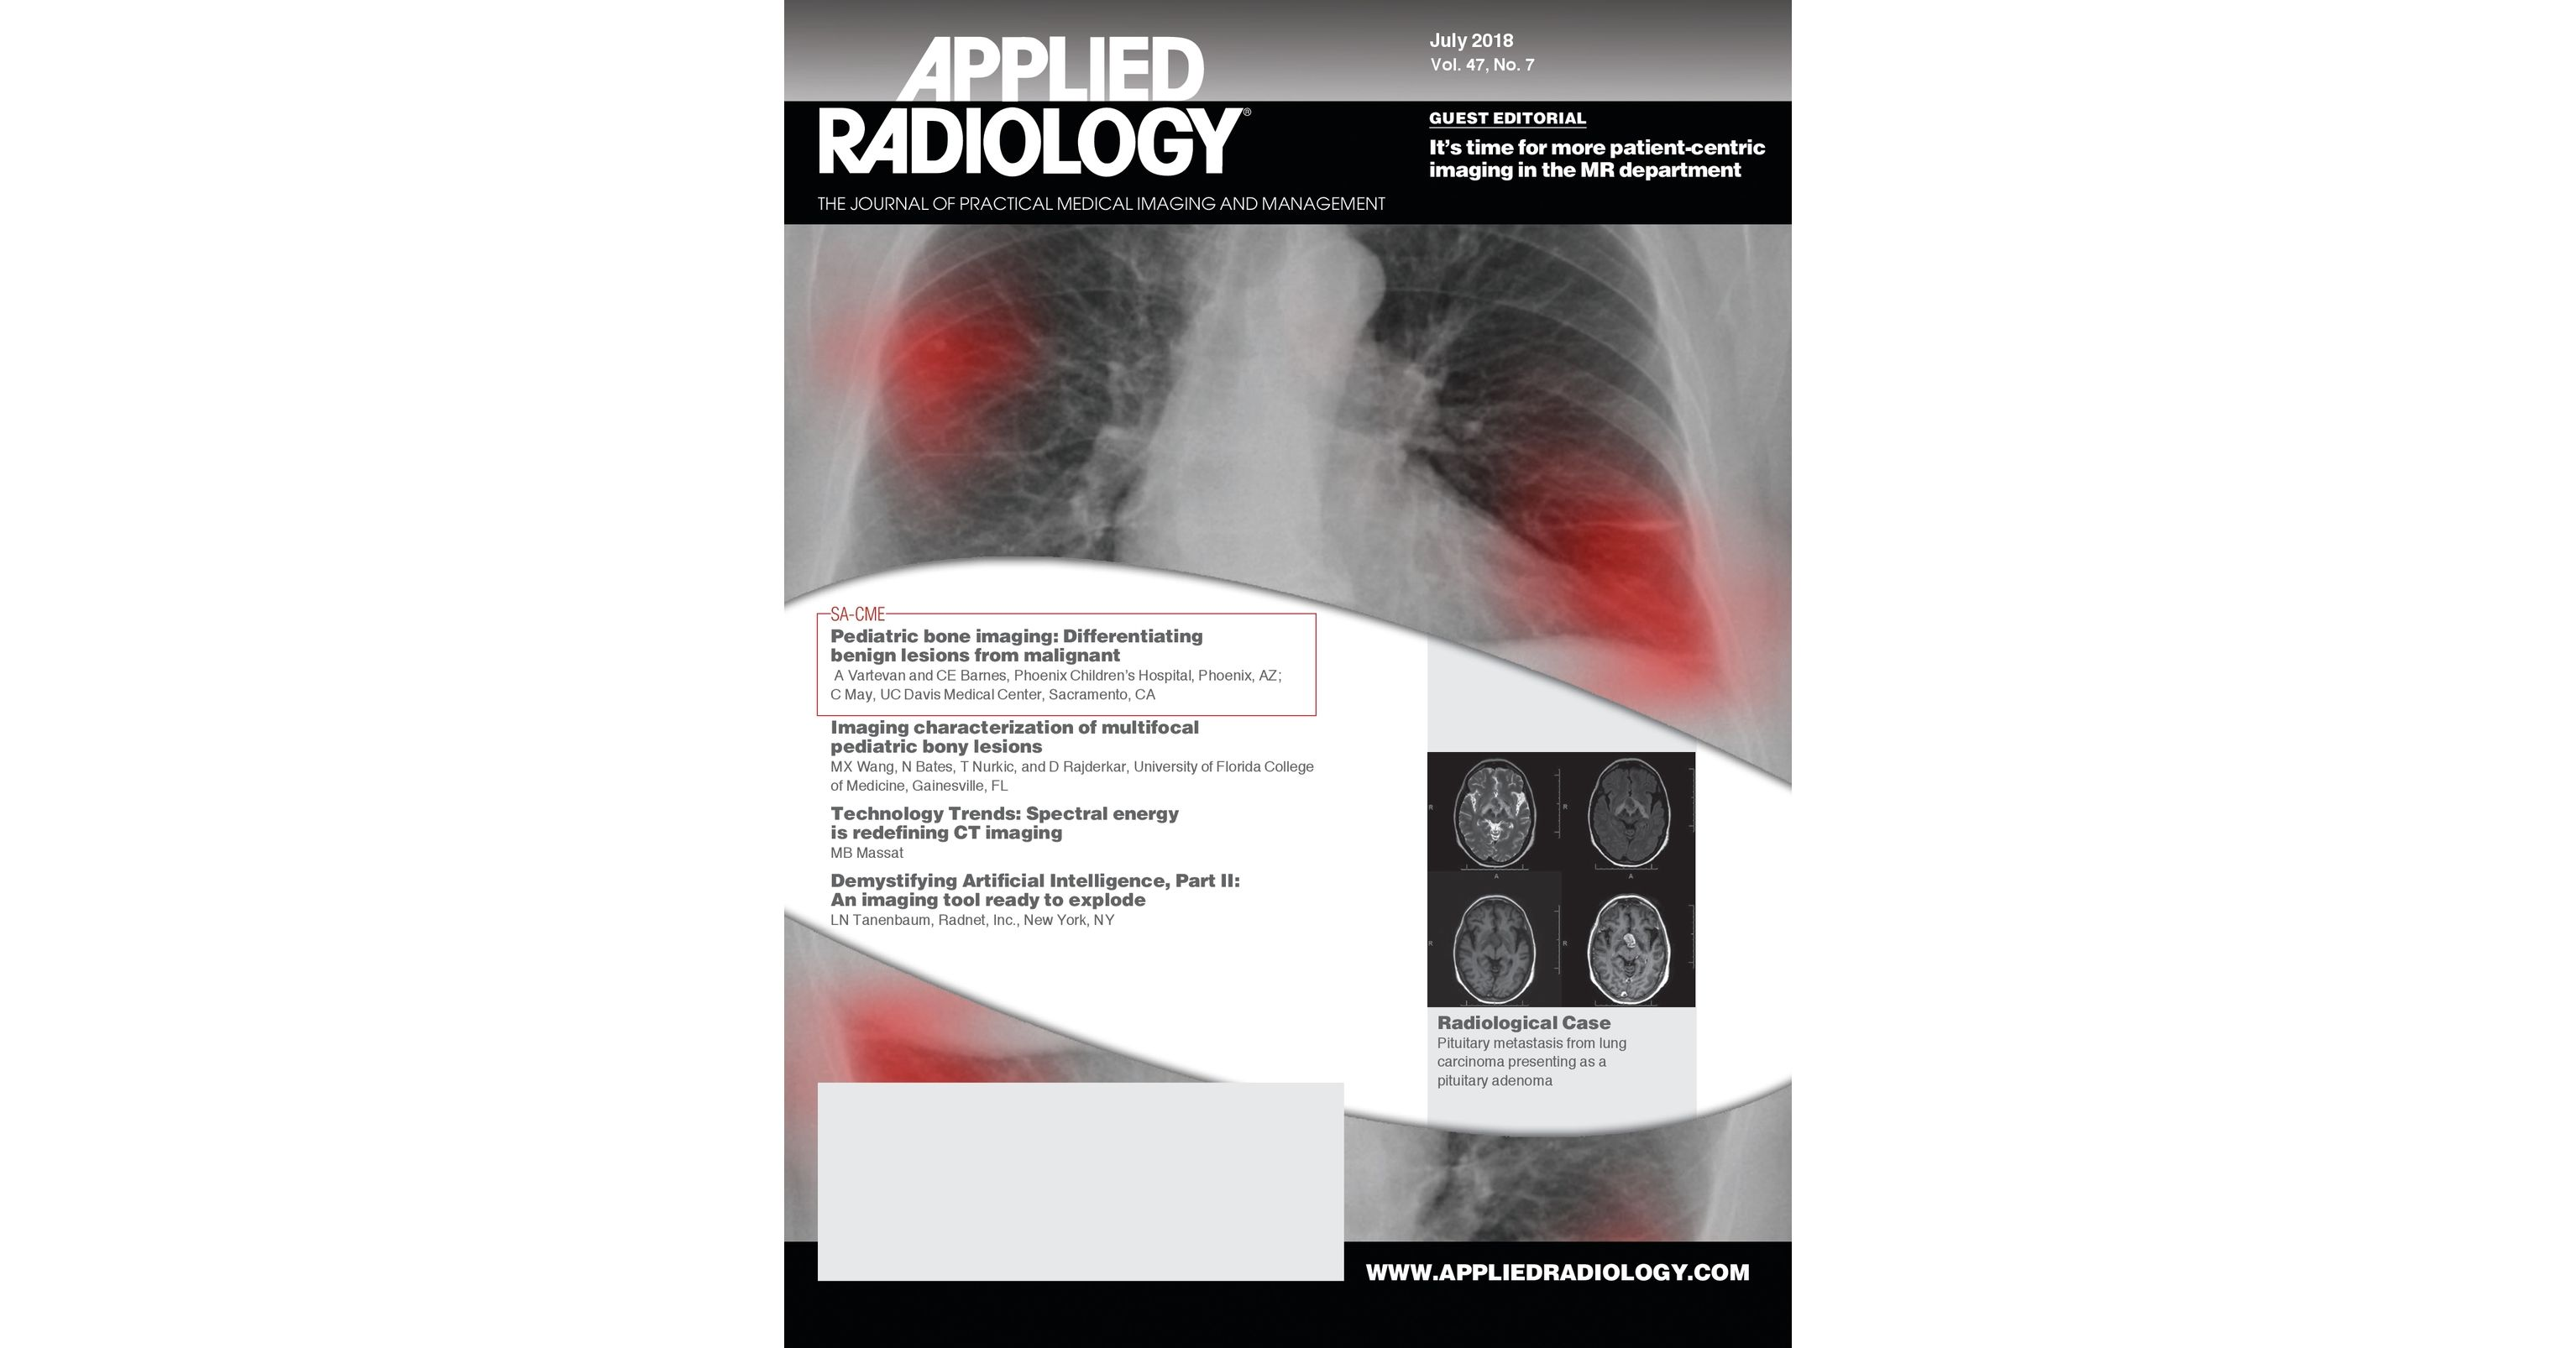 July 2018 Applied Radiology